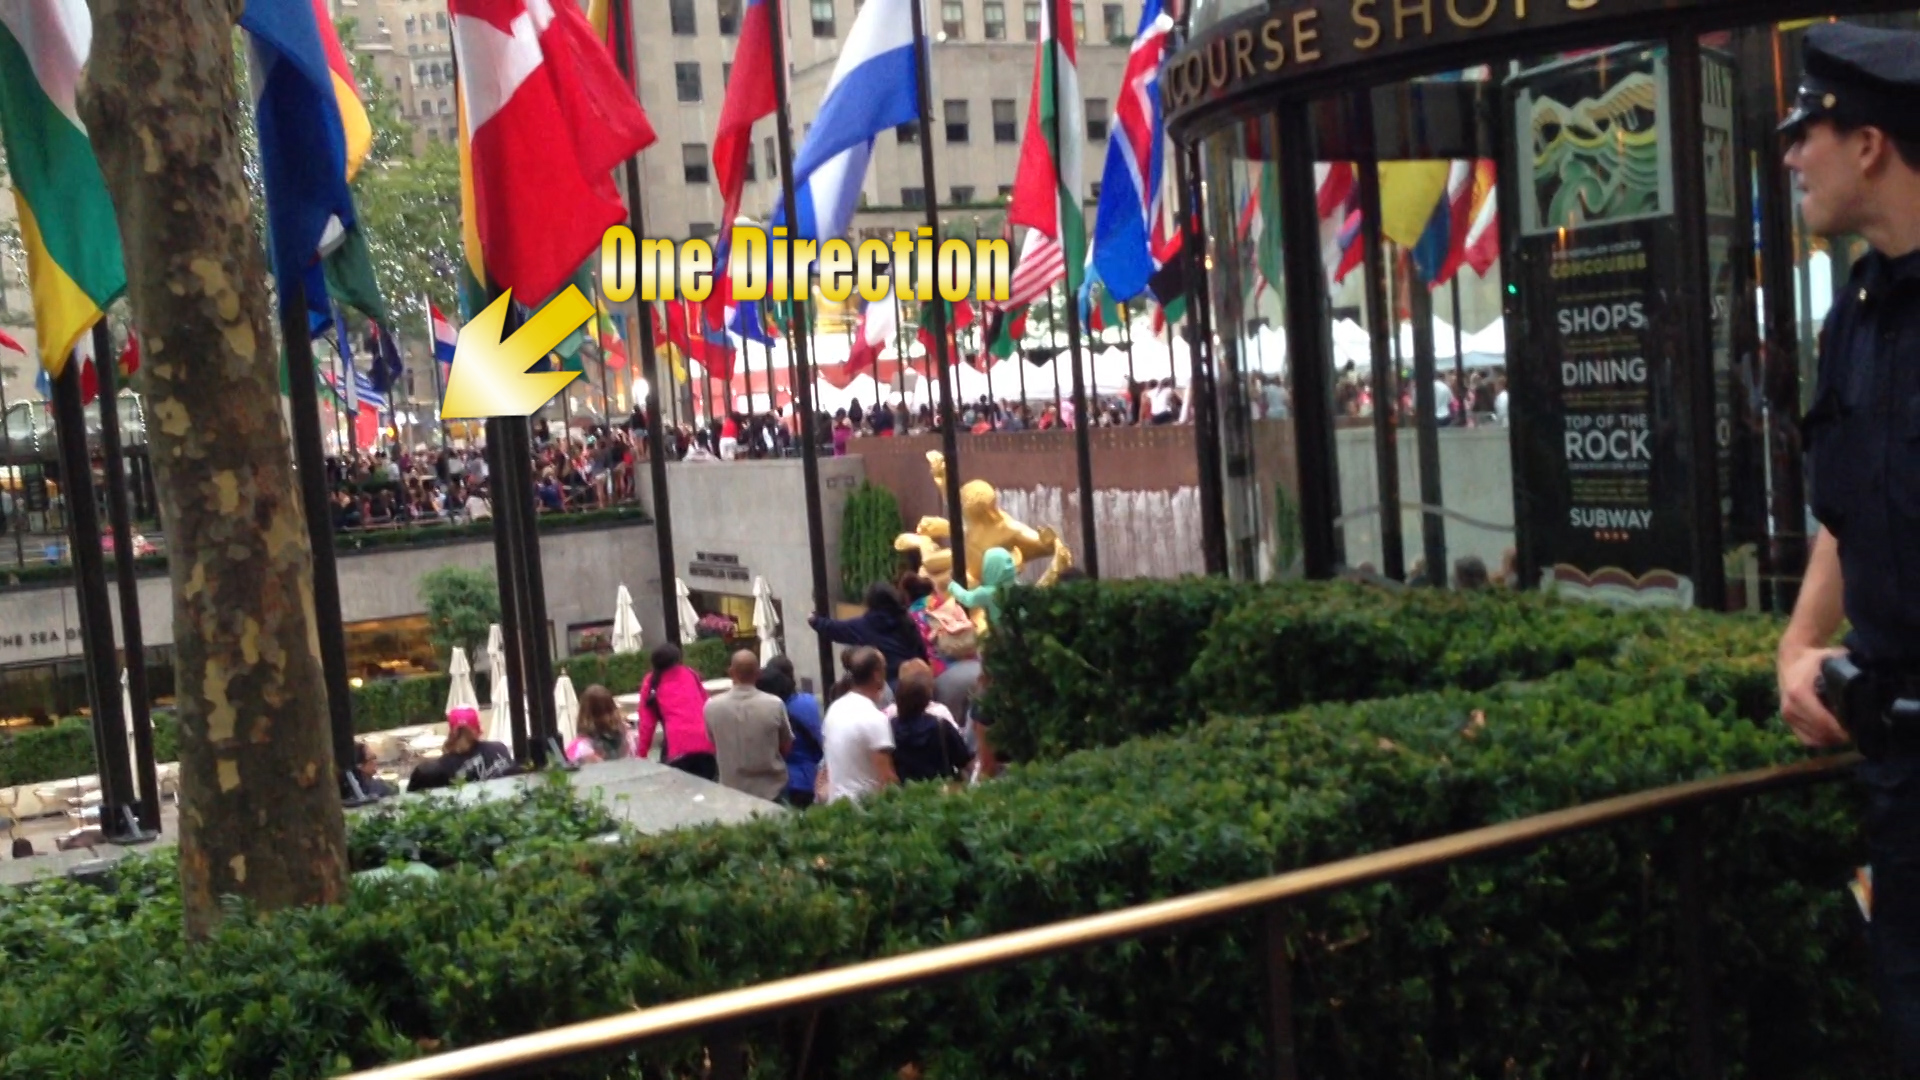 #60: One Direction at Rockefeller Plaza, NYC